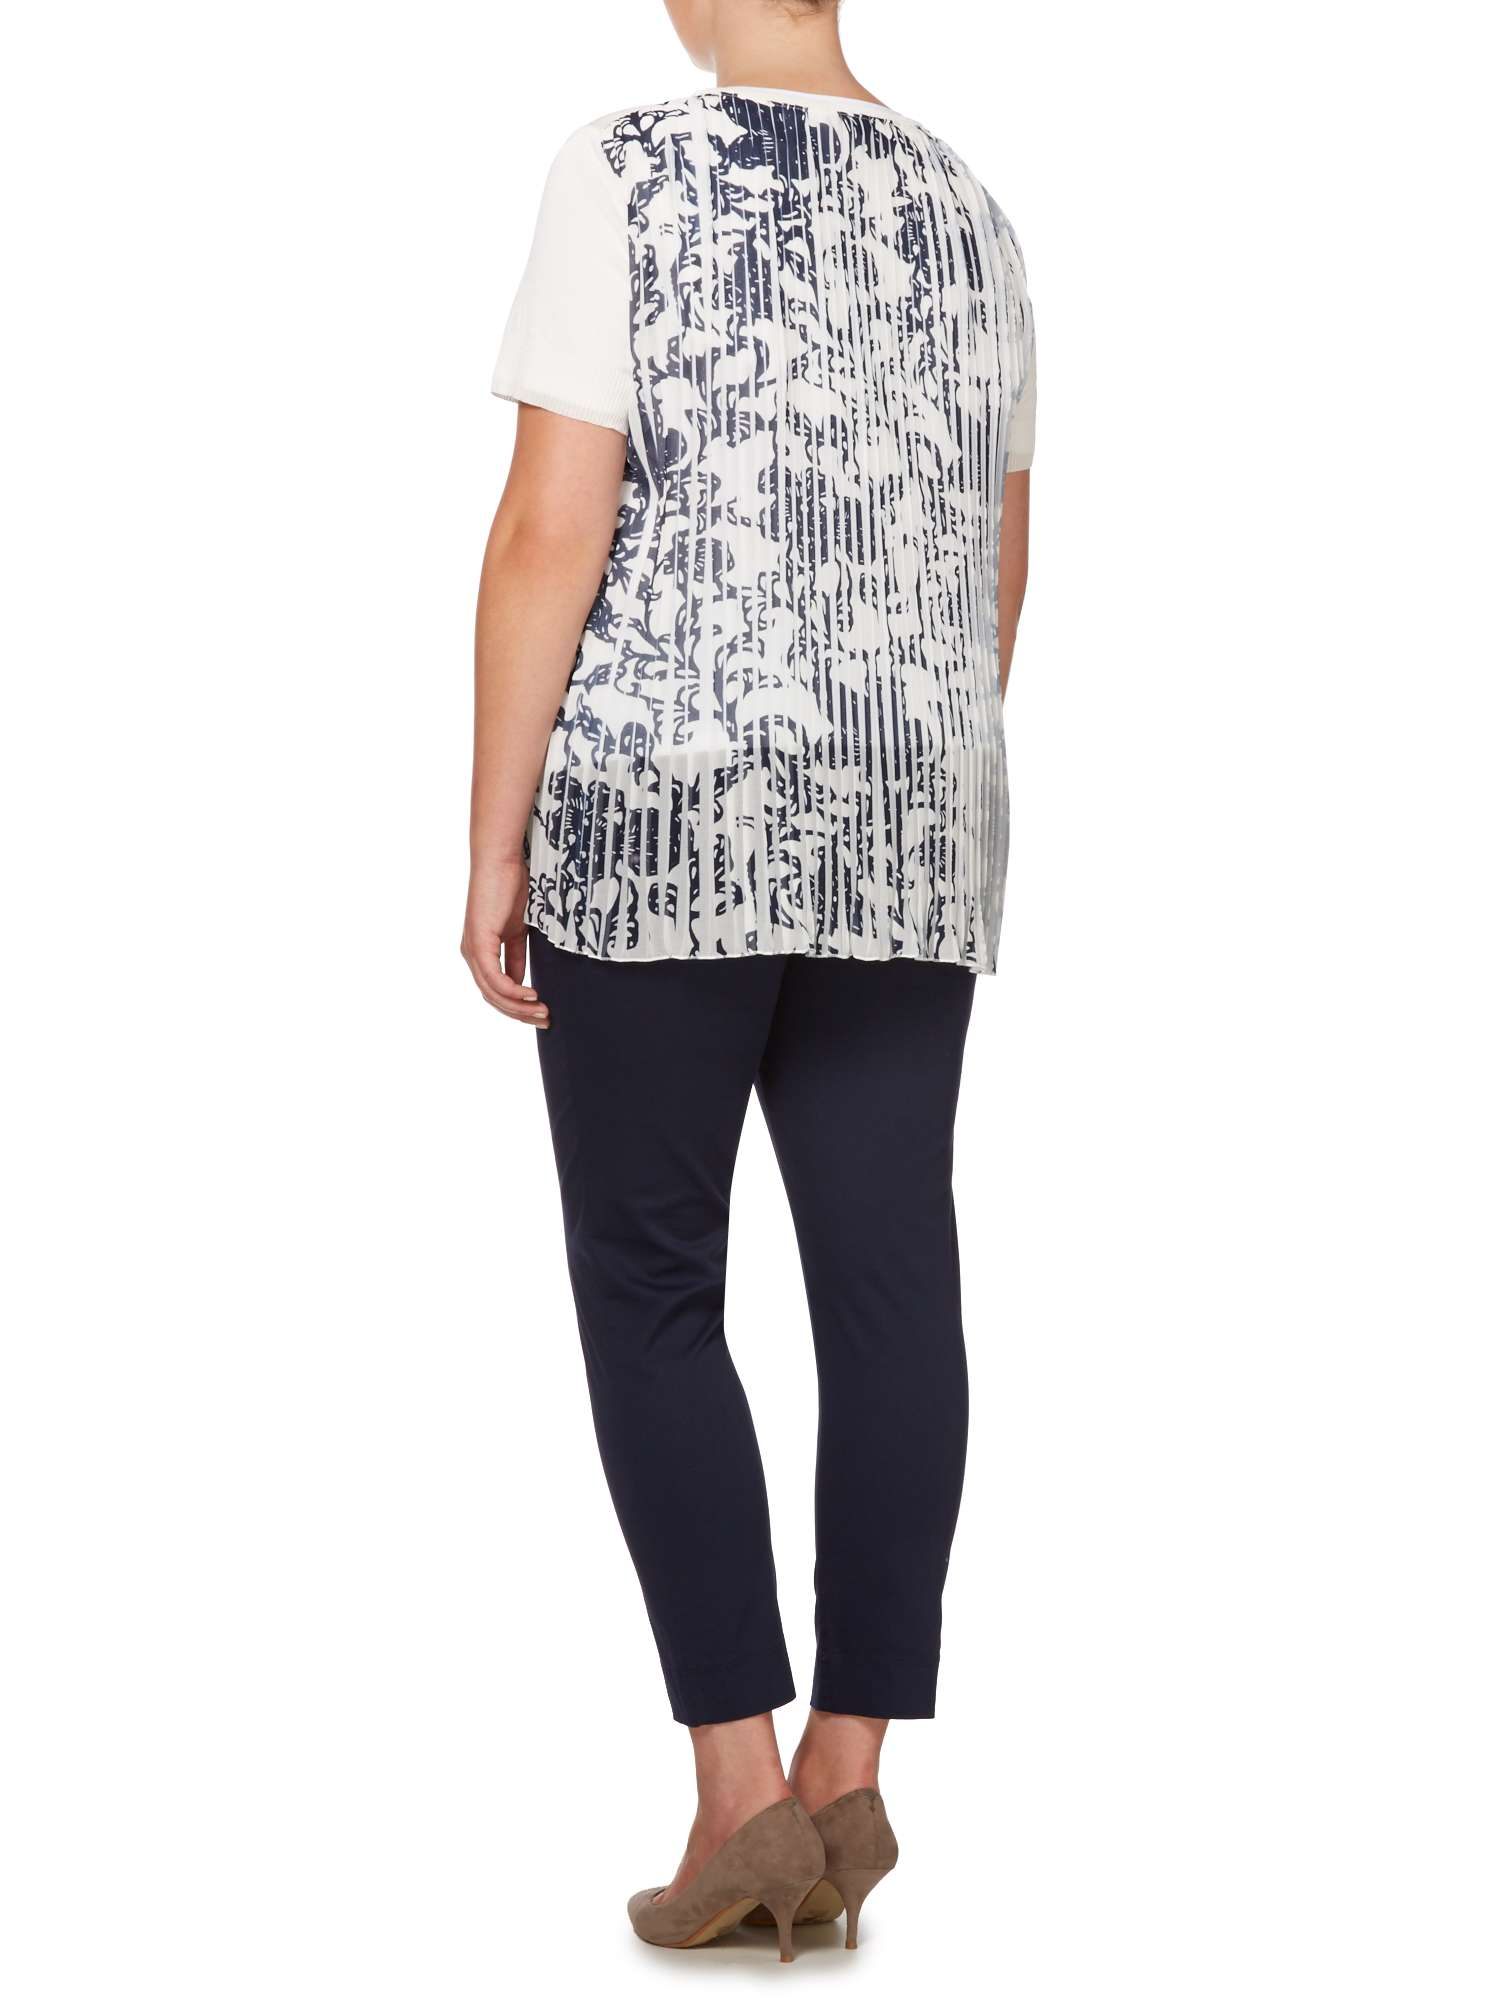 Persona With Tee Knitted Patterned Pleated Back PrzrWFEqZw